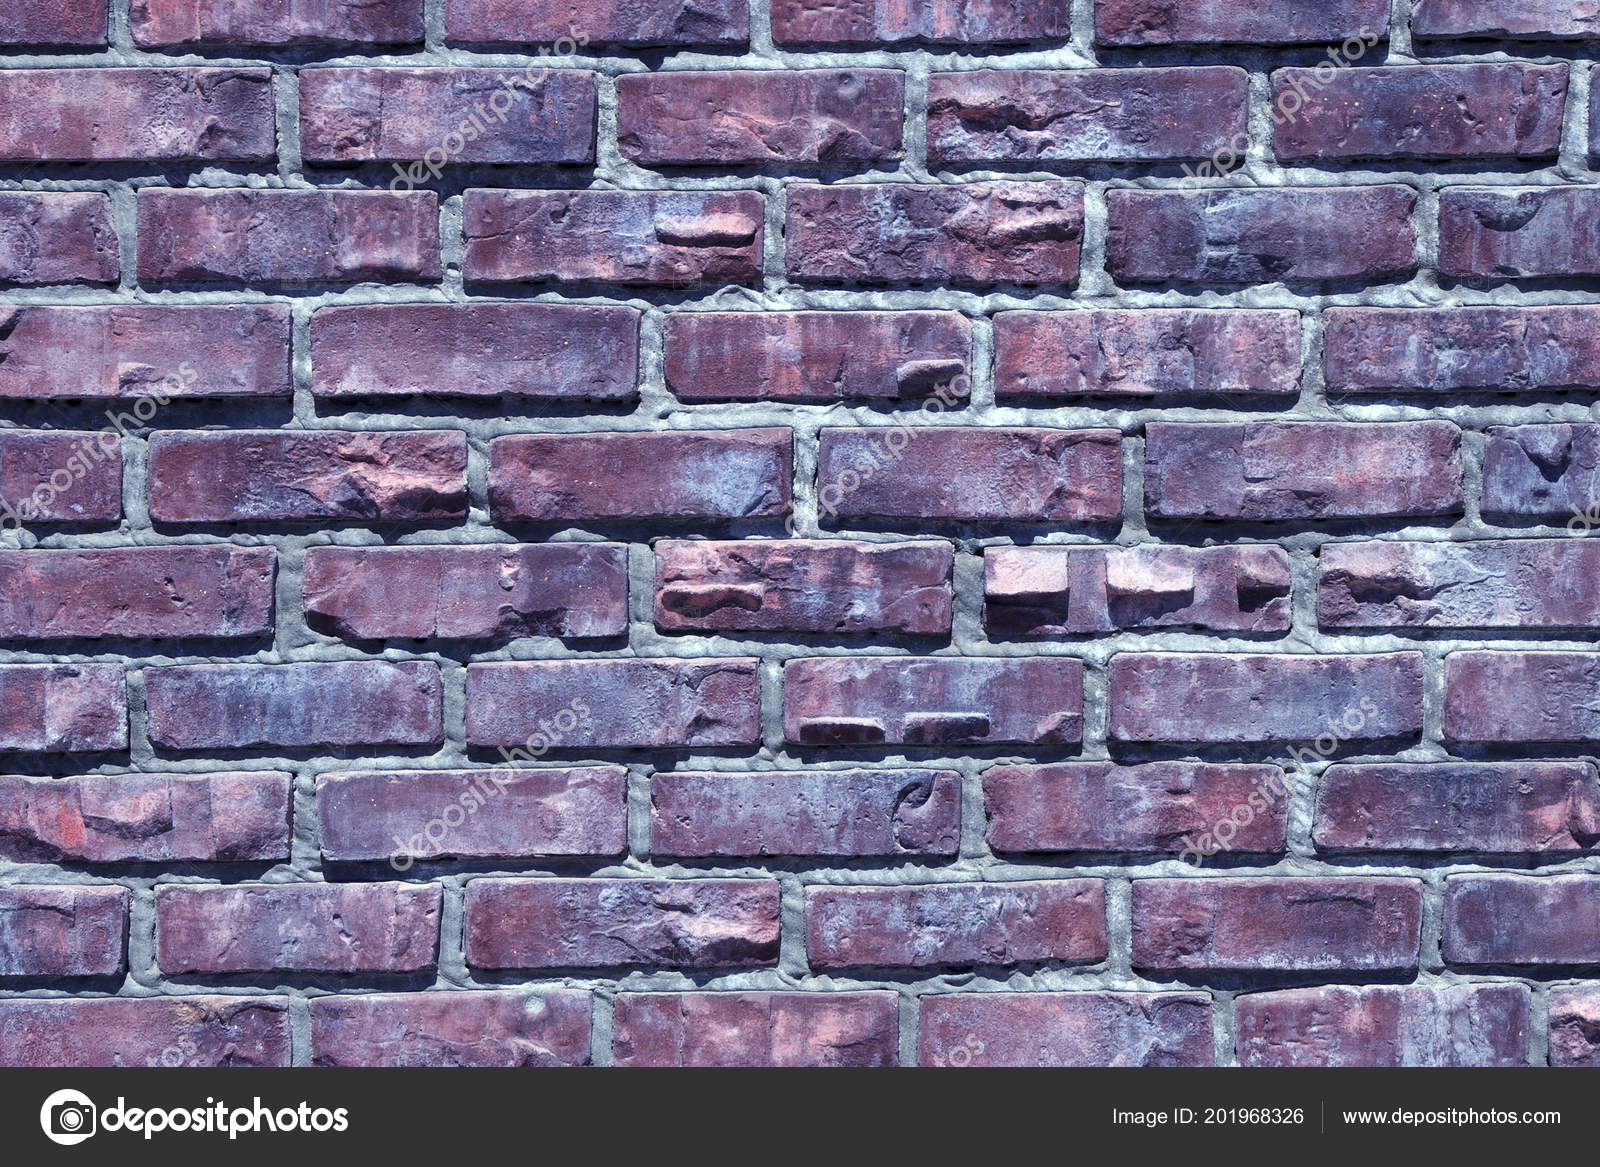 Texture Close Colored Brick Wall Background Image Stock